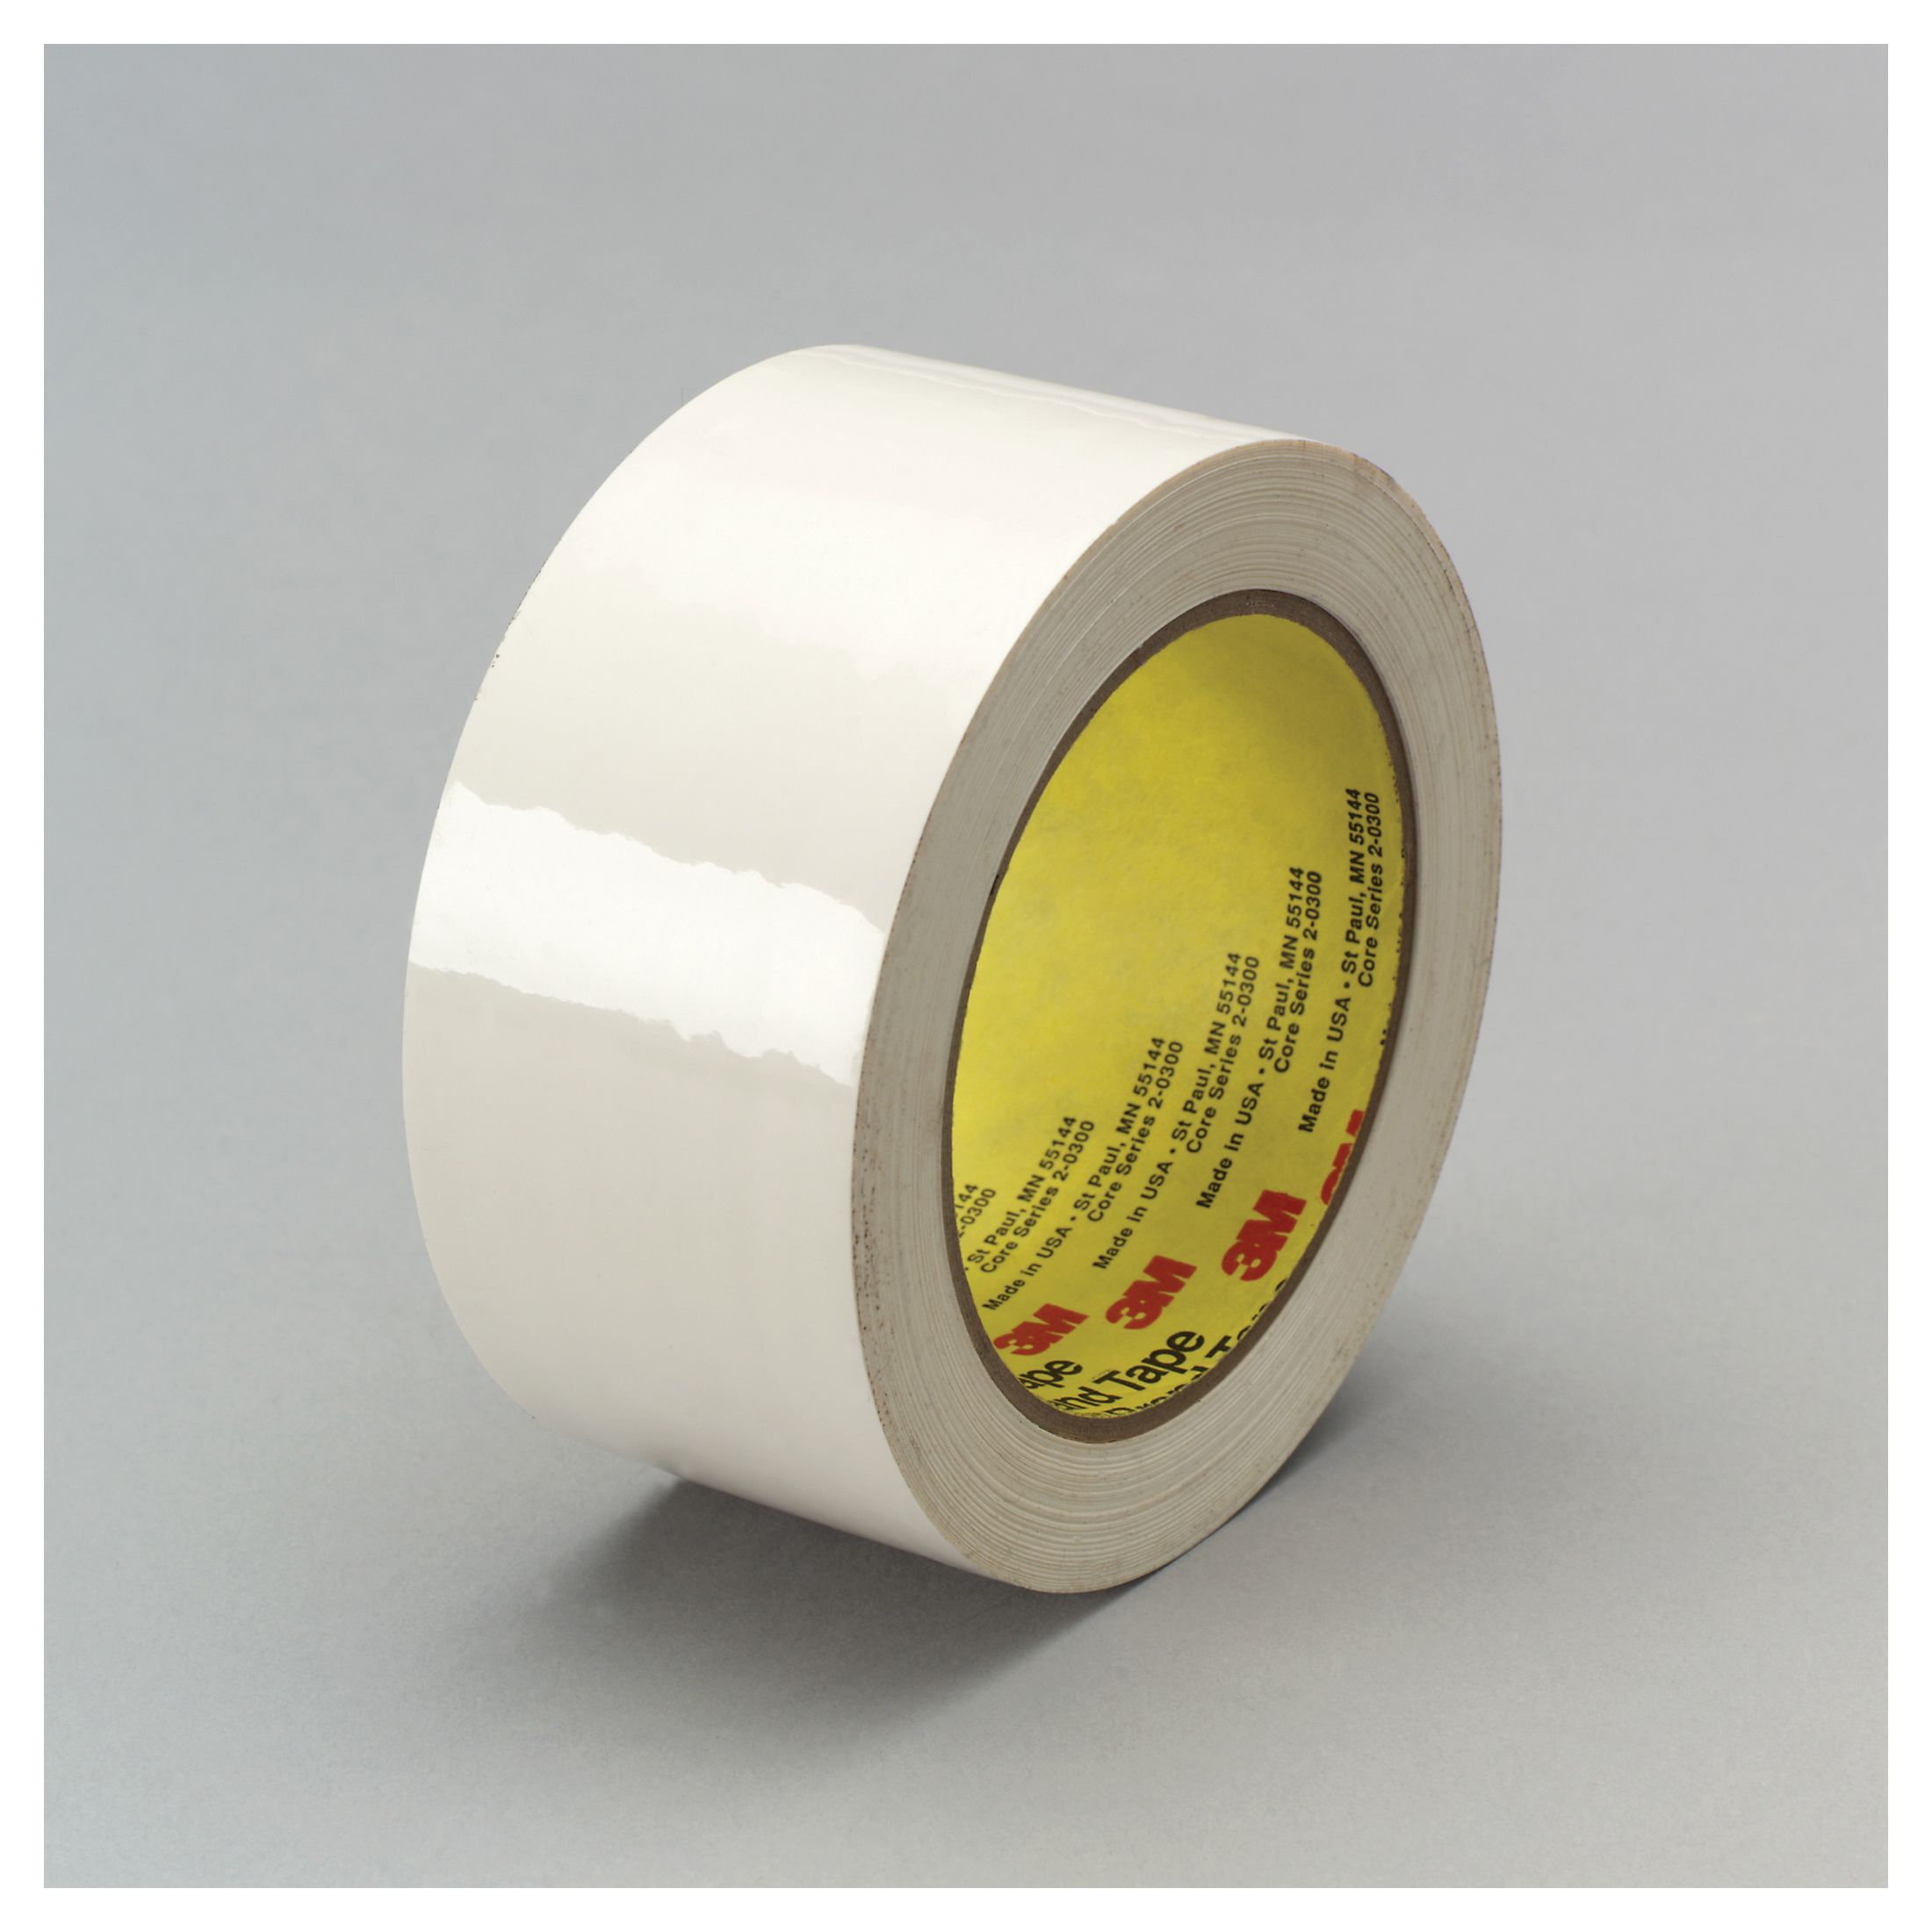 3M™ 021200-05165 483 Chemical Resistant General Purpose UV Resistant Masking Tape, 2 in W x 36 yd Roll L, 5 mil THK, White